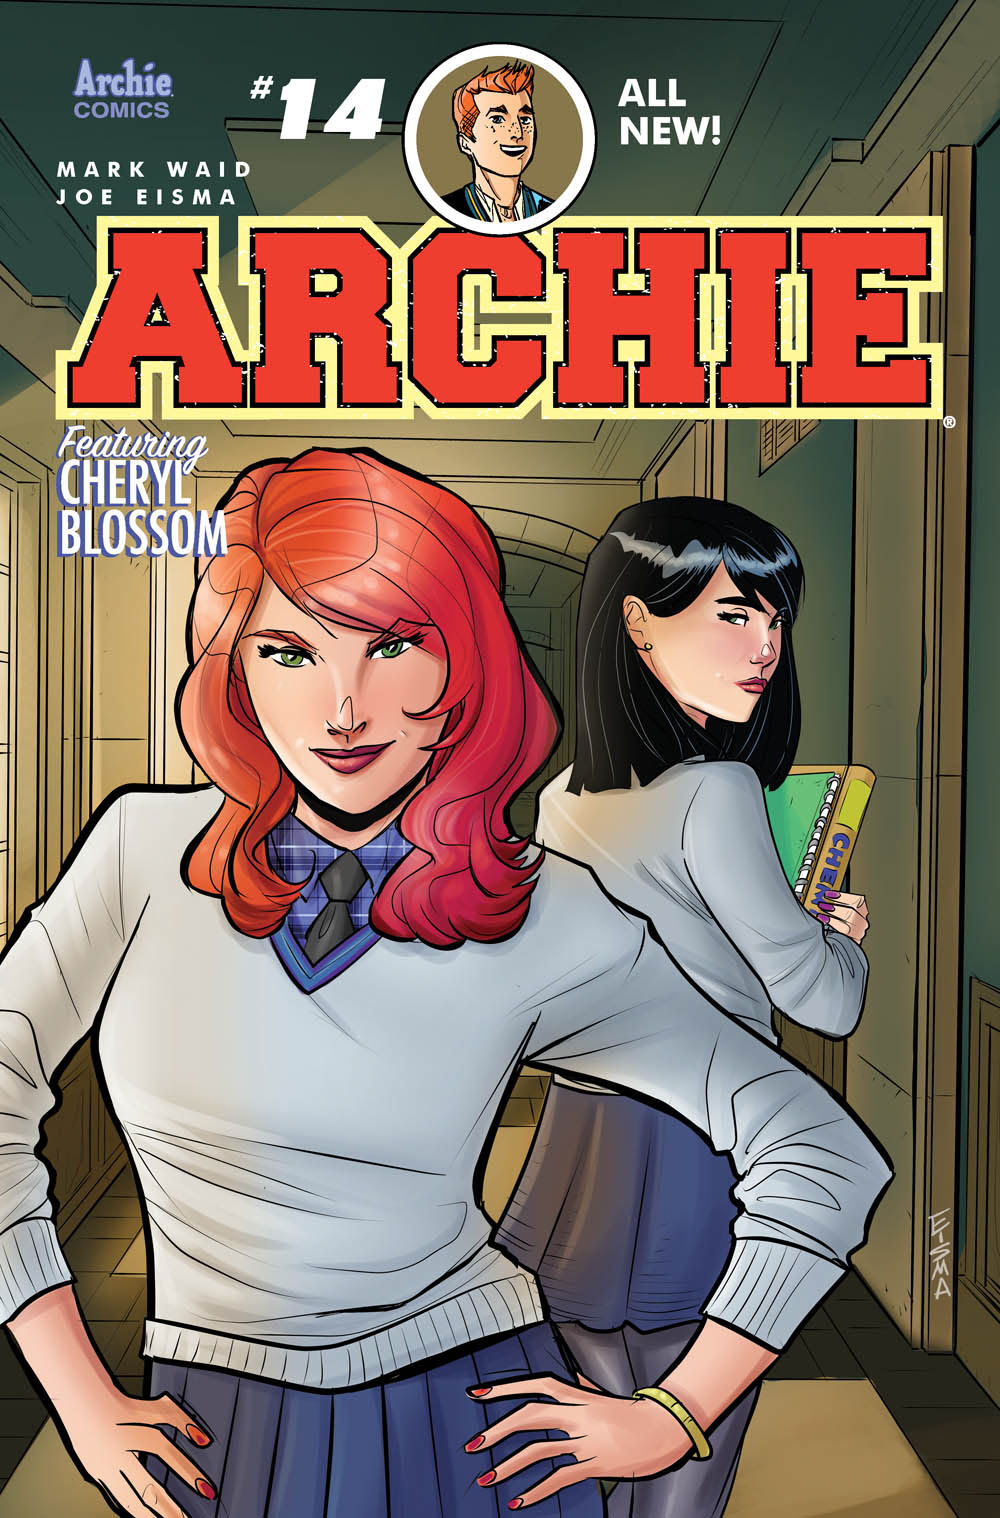 Archie #14 Cover